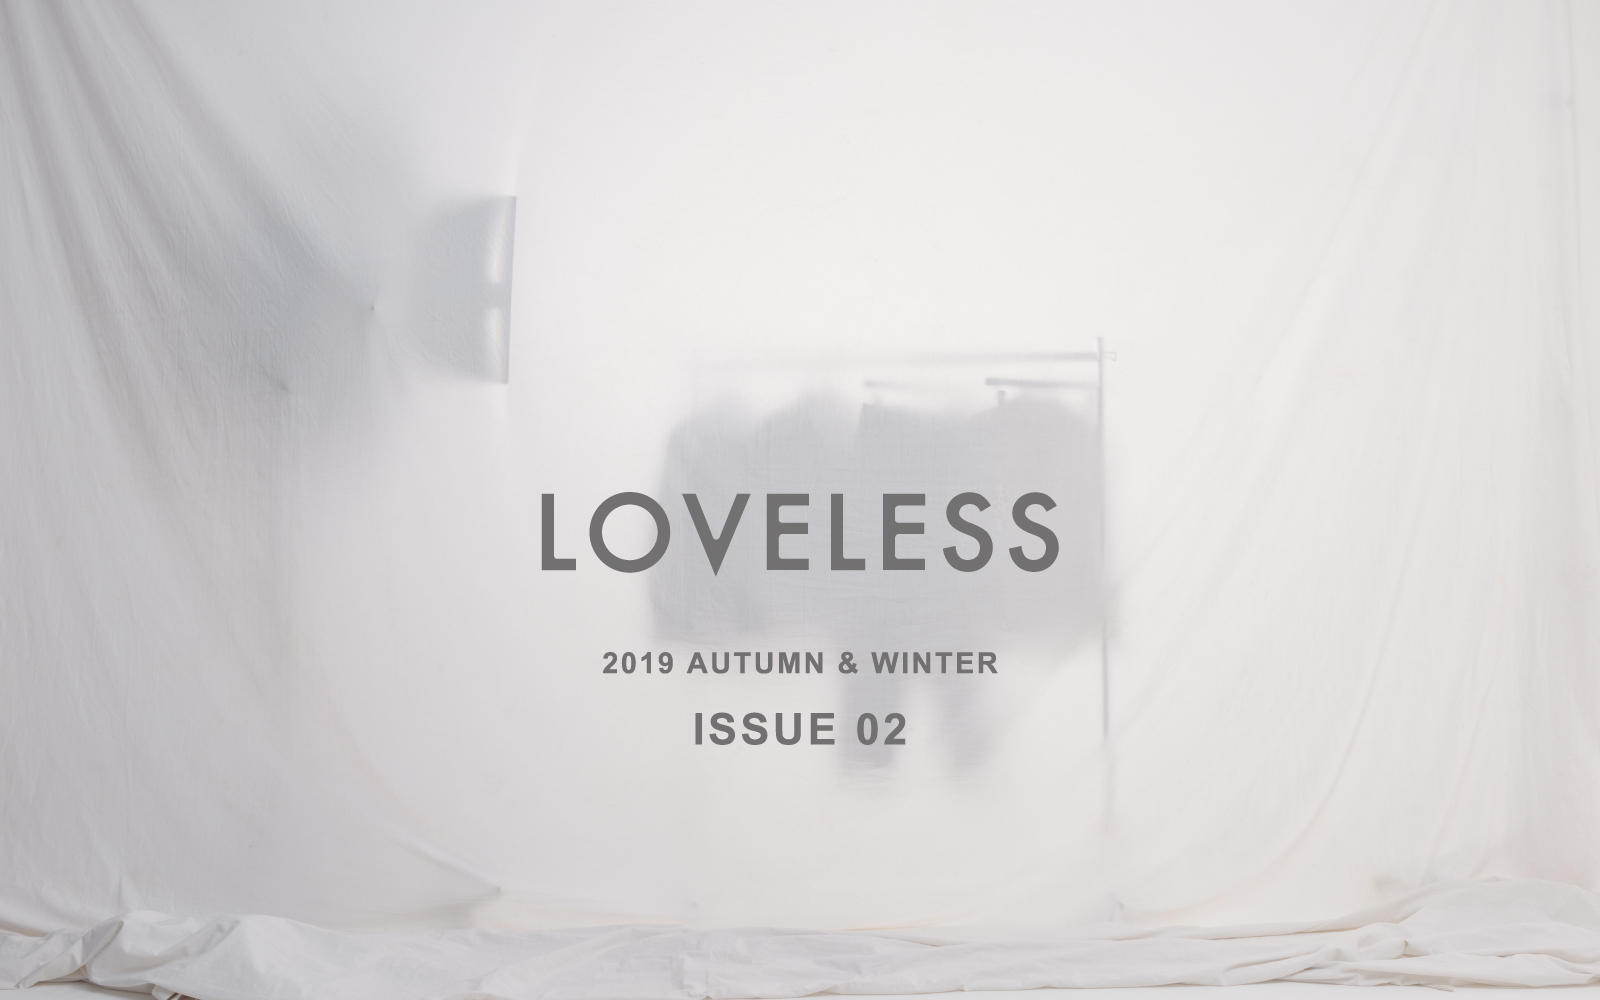 LOVELESS 2019 AUTUMN & WINTER ISSUE 02 - MEN'S STYLE -